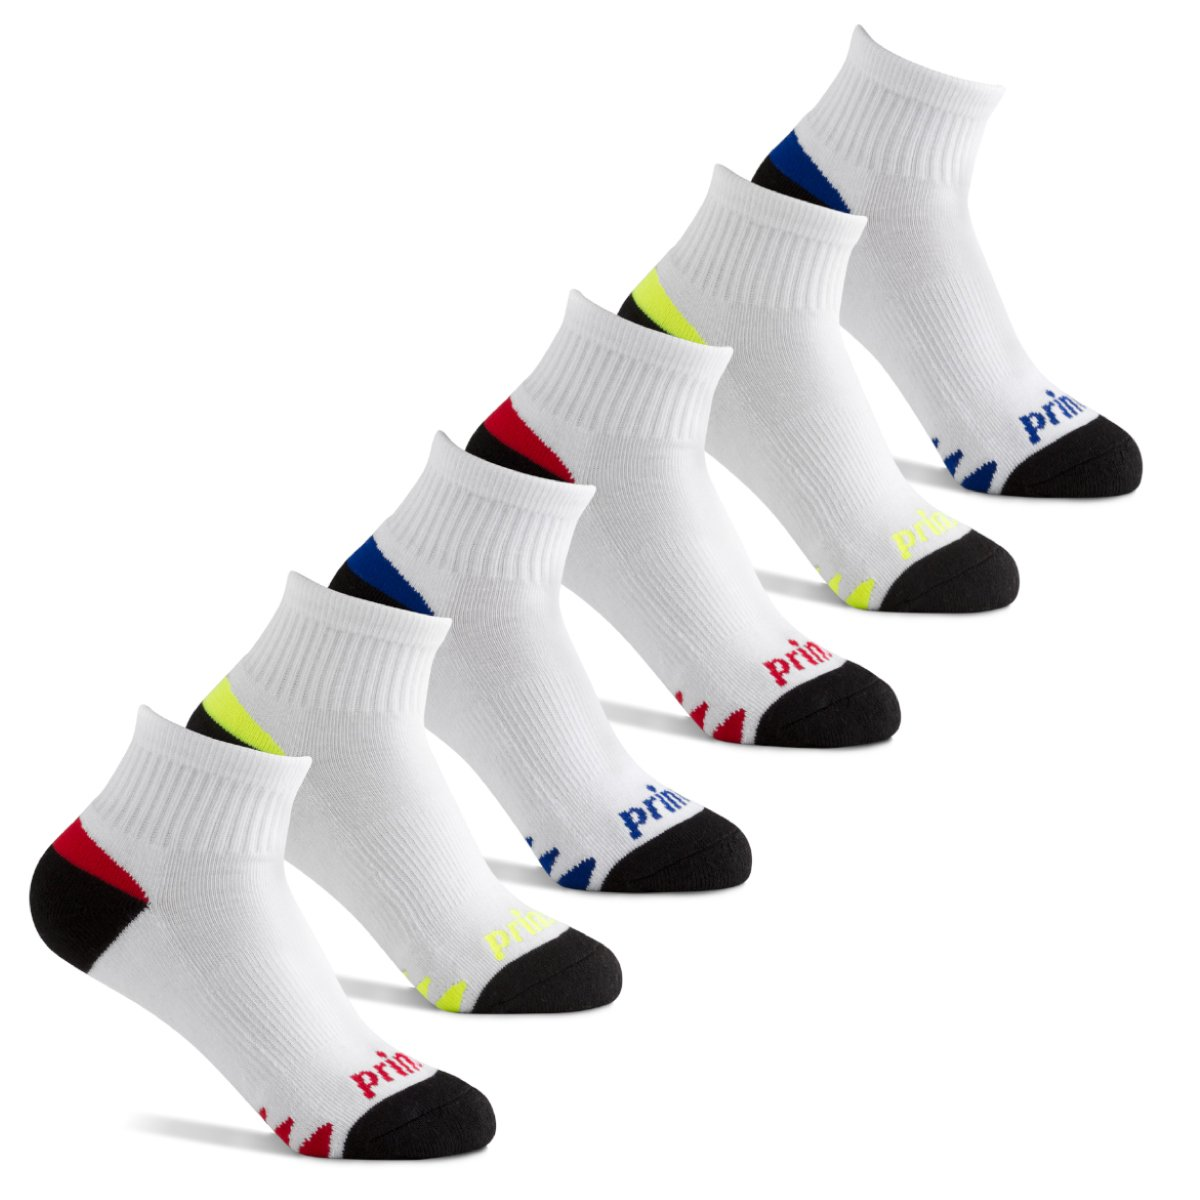 Prince Boys' Quarter Length Athletic Socks with Cushion for Active Kids